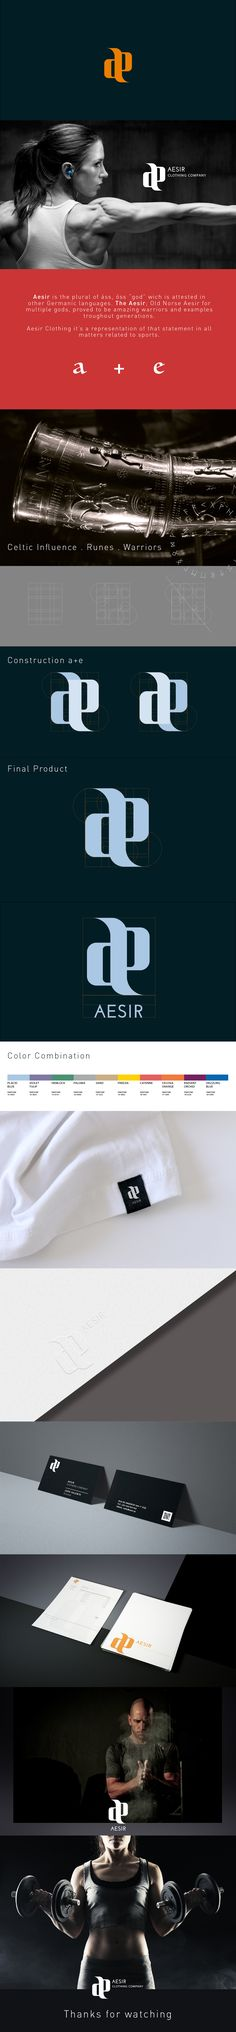 Aesir is a clothing company that builds clothes for crossfit. With an influence from the Nordic Gods, Aesir builds weapons of choice that were thought for intense development. Brand Identity, Branding, Clothing Company, Personal Trainer, Behance, Style Inspiration, Logos, Clothes, Ideas